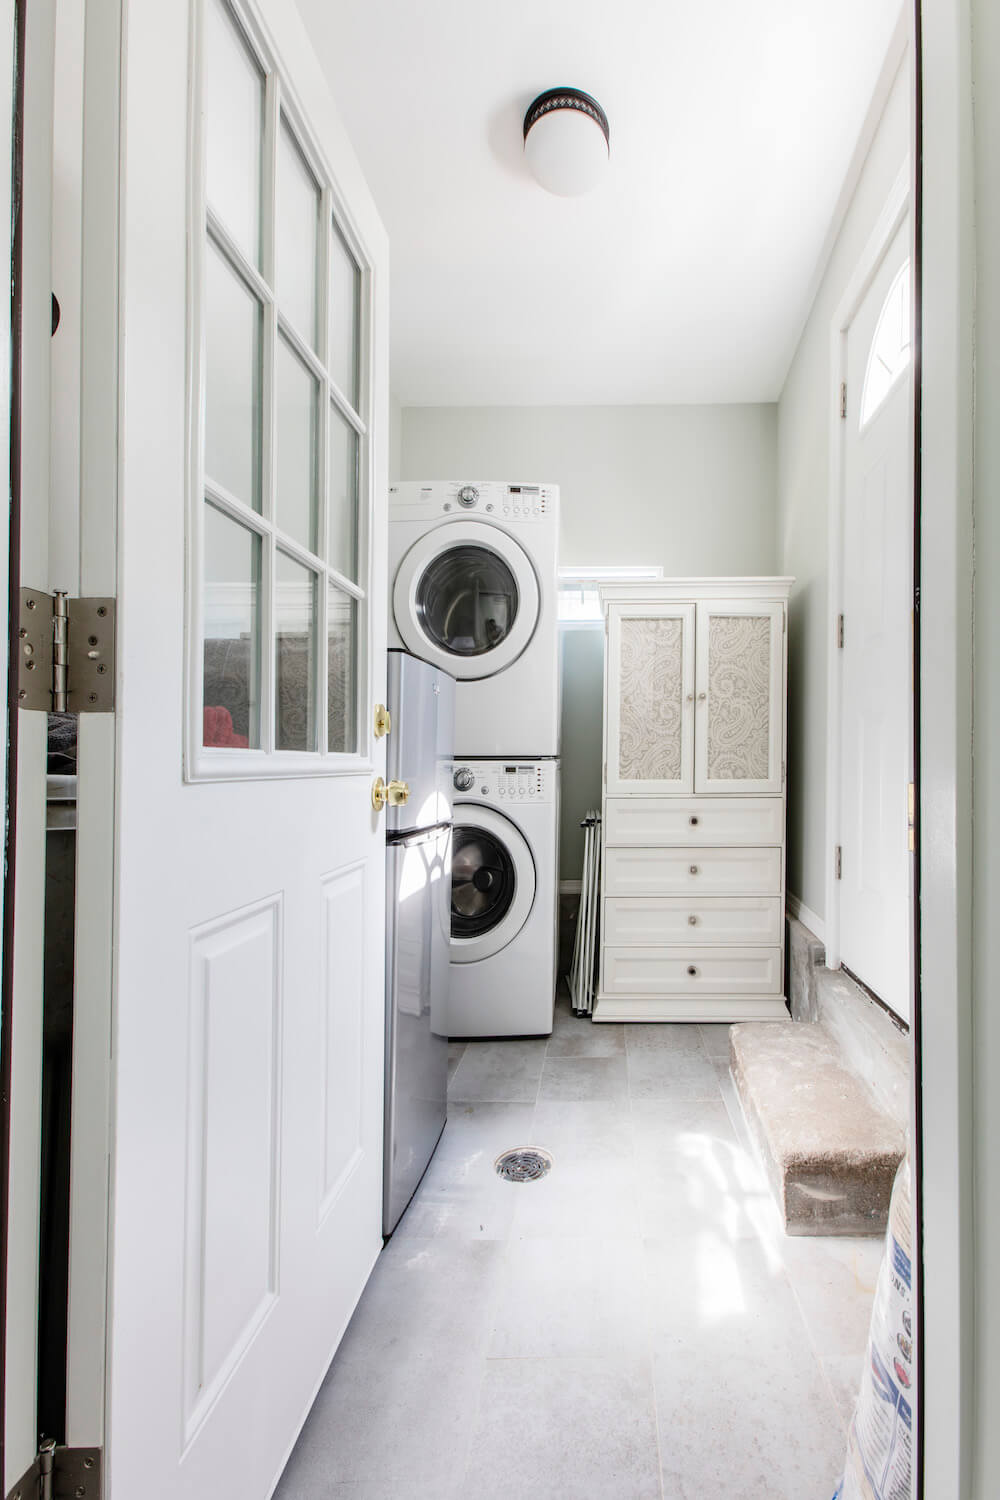 Door opening into laundry room with stacked washer and dryer, with white pantry storage